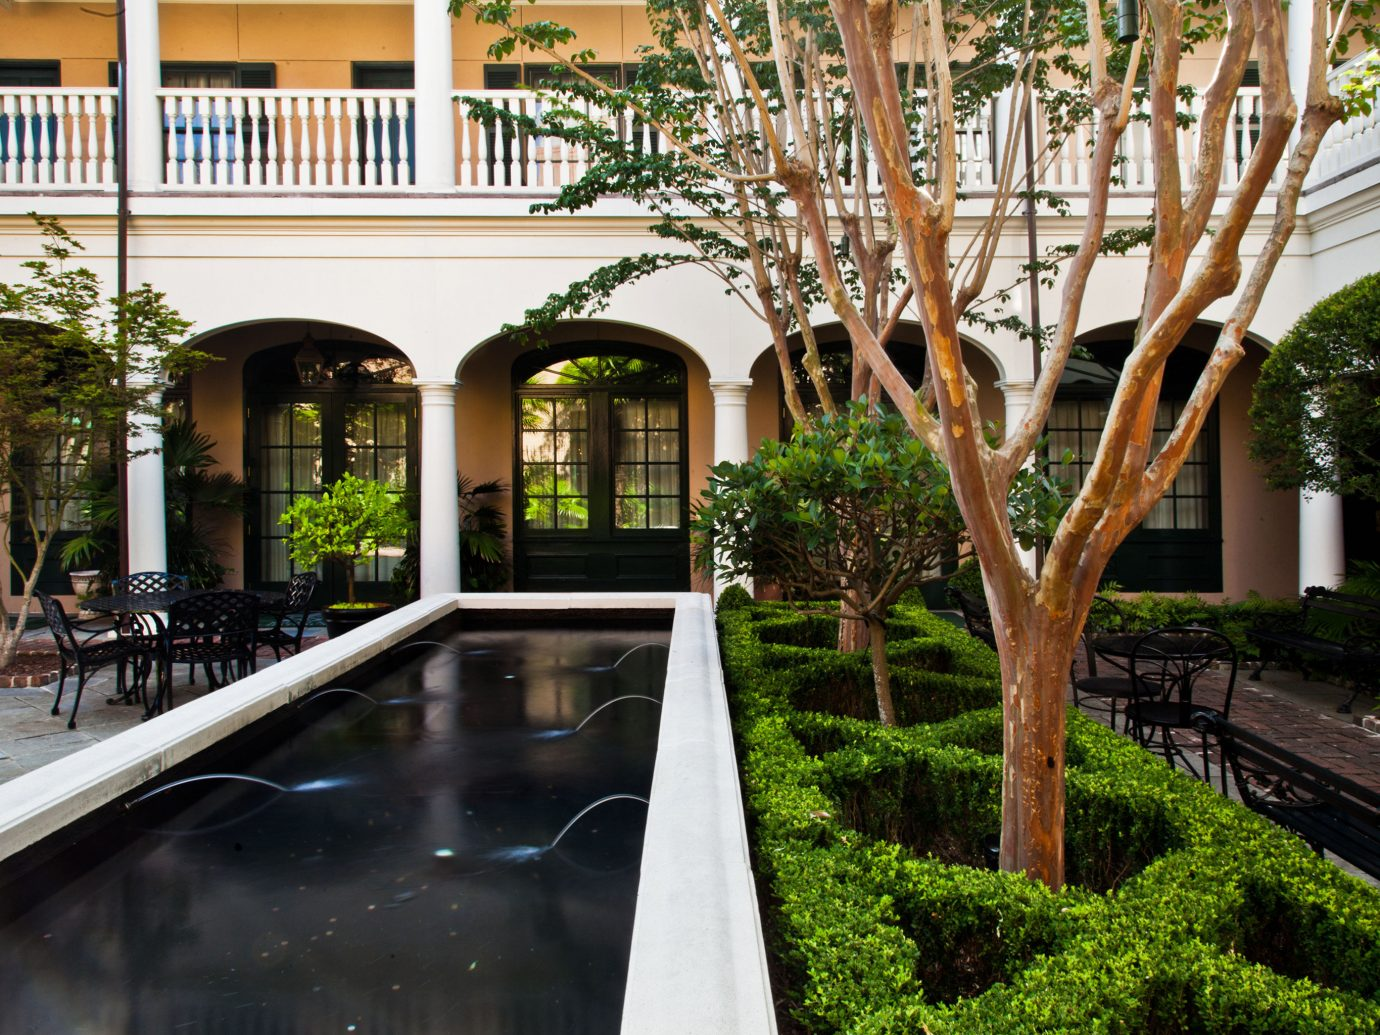 Elegant Exterior Fireplace Garden Grounds Hotels Inn Living Lobby Lounge Outdoors outdoor property estate house Courtyard home Architecture backyard Resort vacation swimming pool mansion condominium Villa yard flower outdoor structure